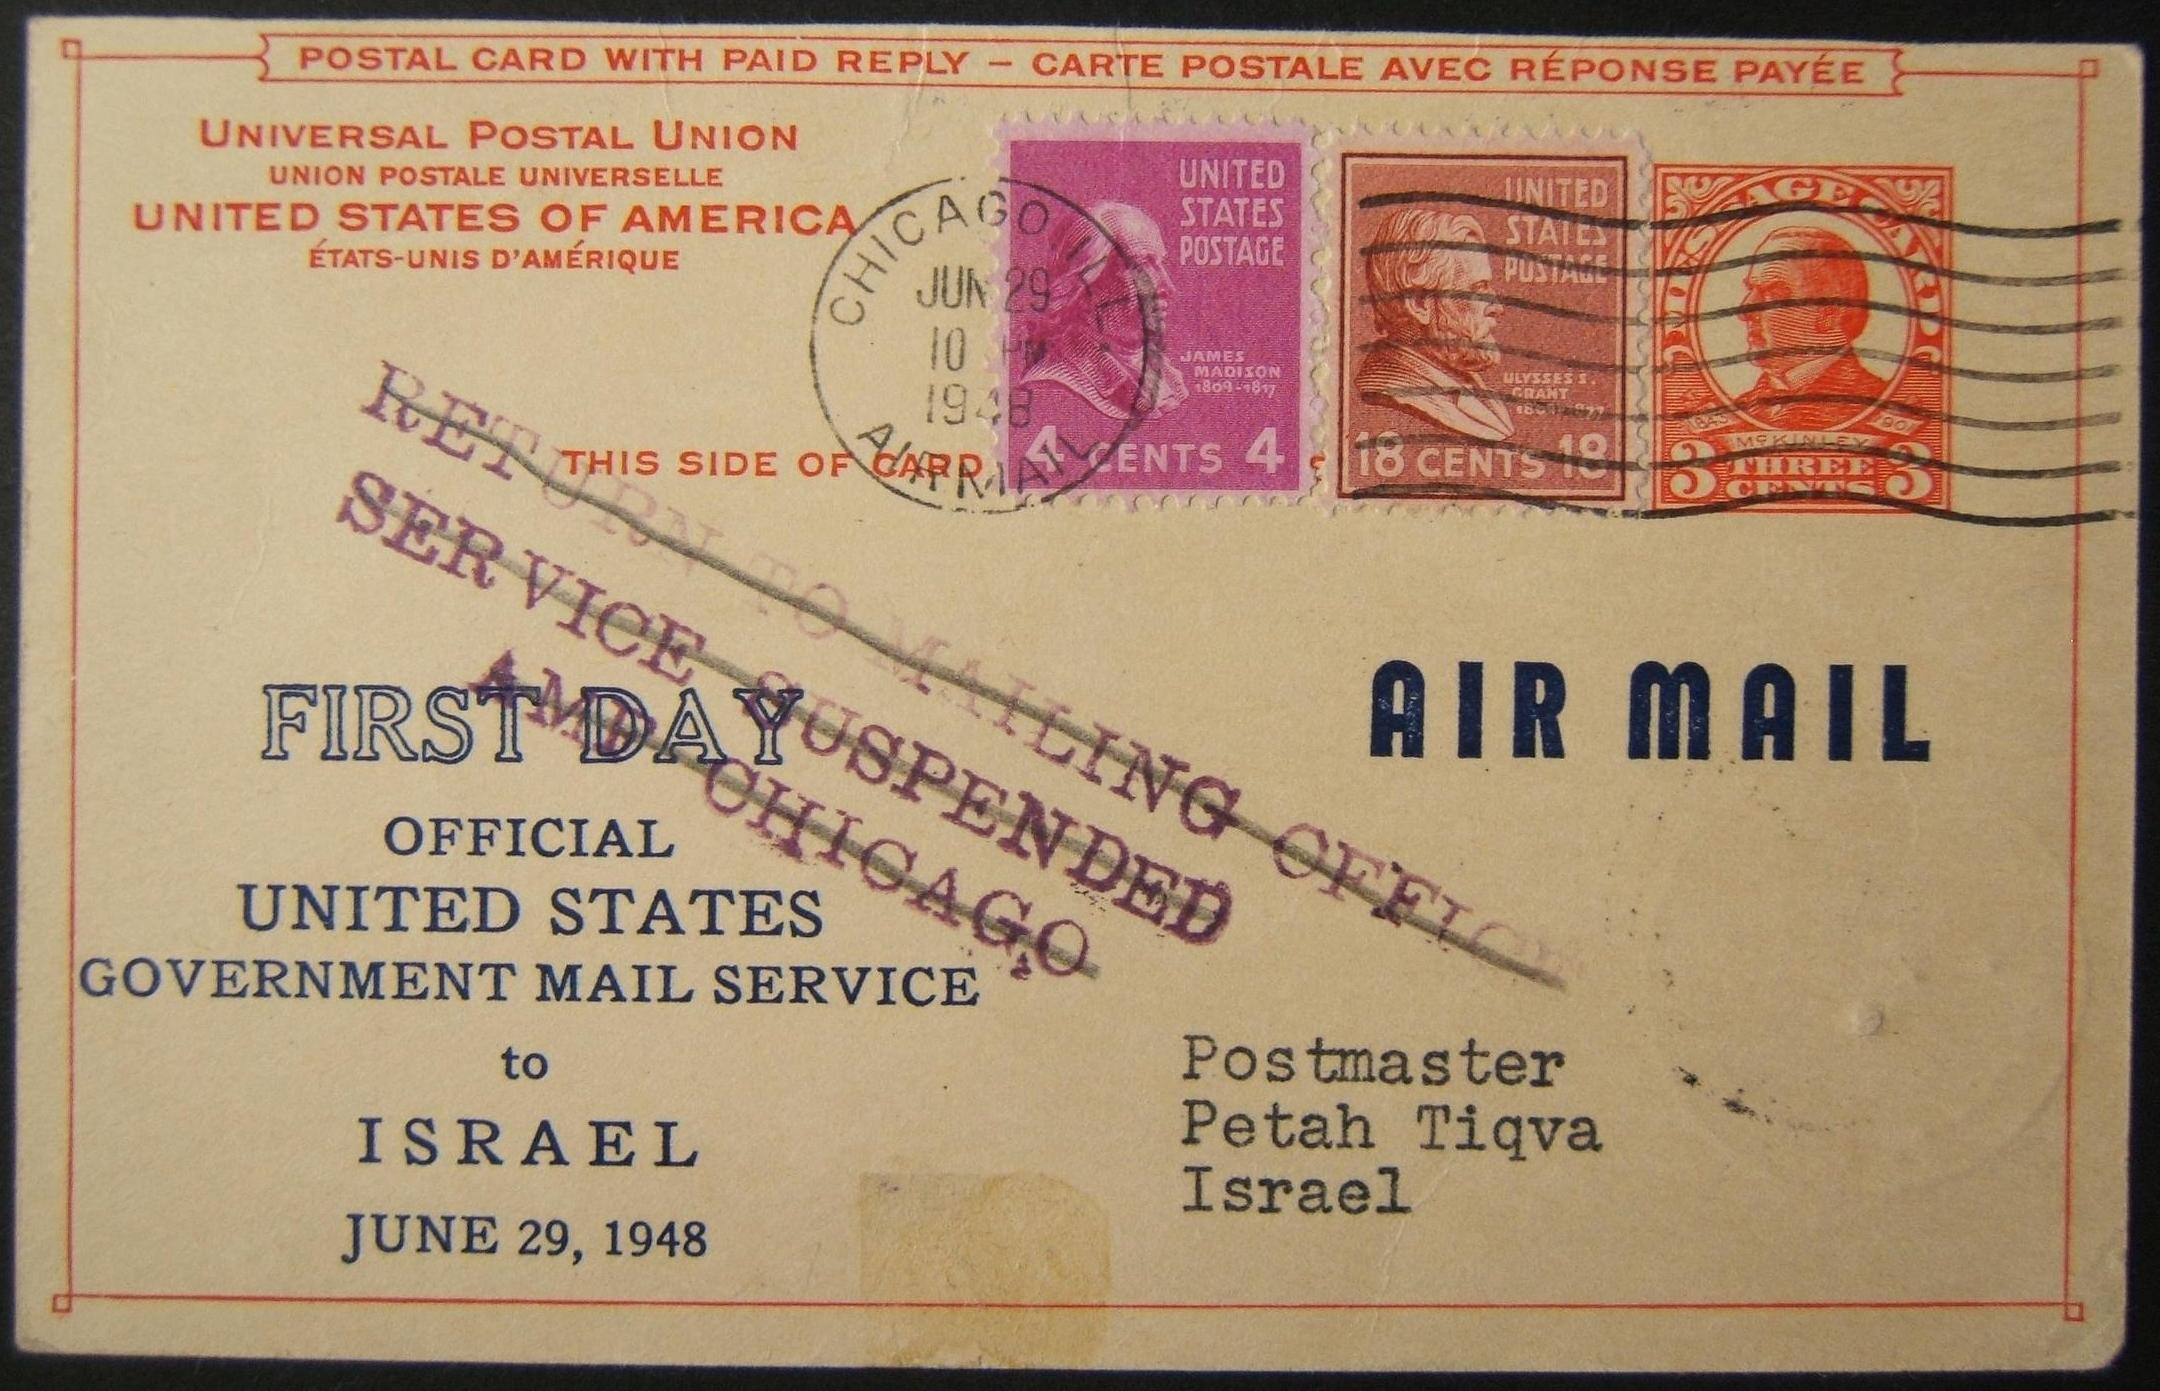 1948-49 War postal suspensions with Israel: a/m 'FD a/m to Israel' RPPC ex CHICAGO Palestine PH Society to postmaster PETACH TIKVA, pre-printed with 3c franking + additional 22c fr